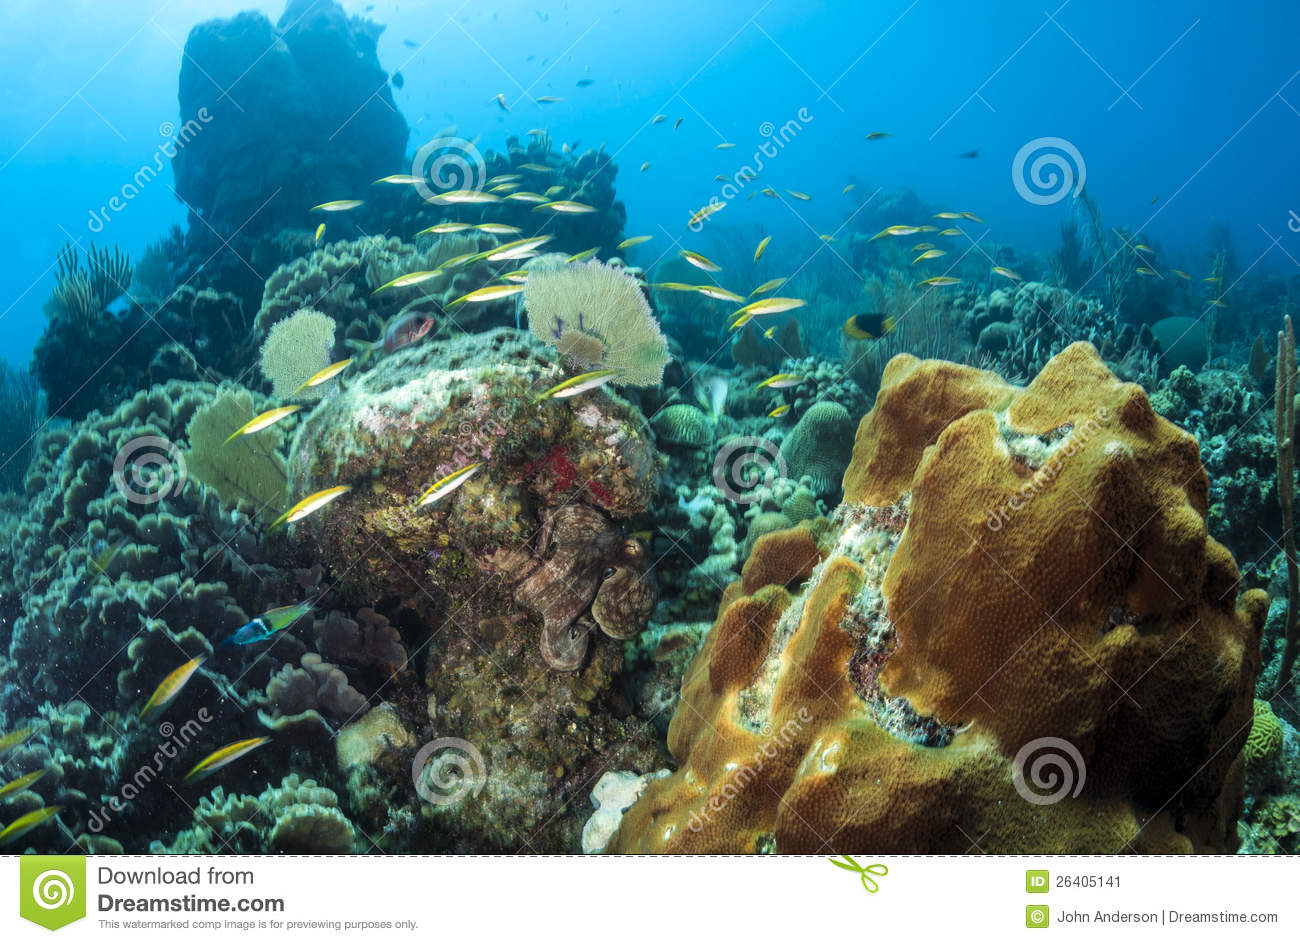 Coral Reef Octopus Stock Image - Image: 26405141